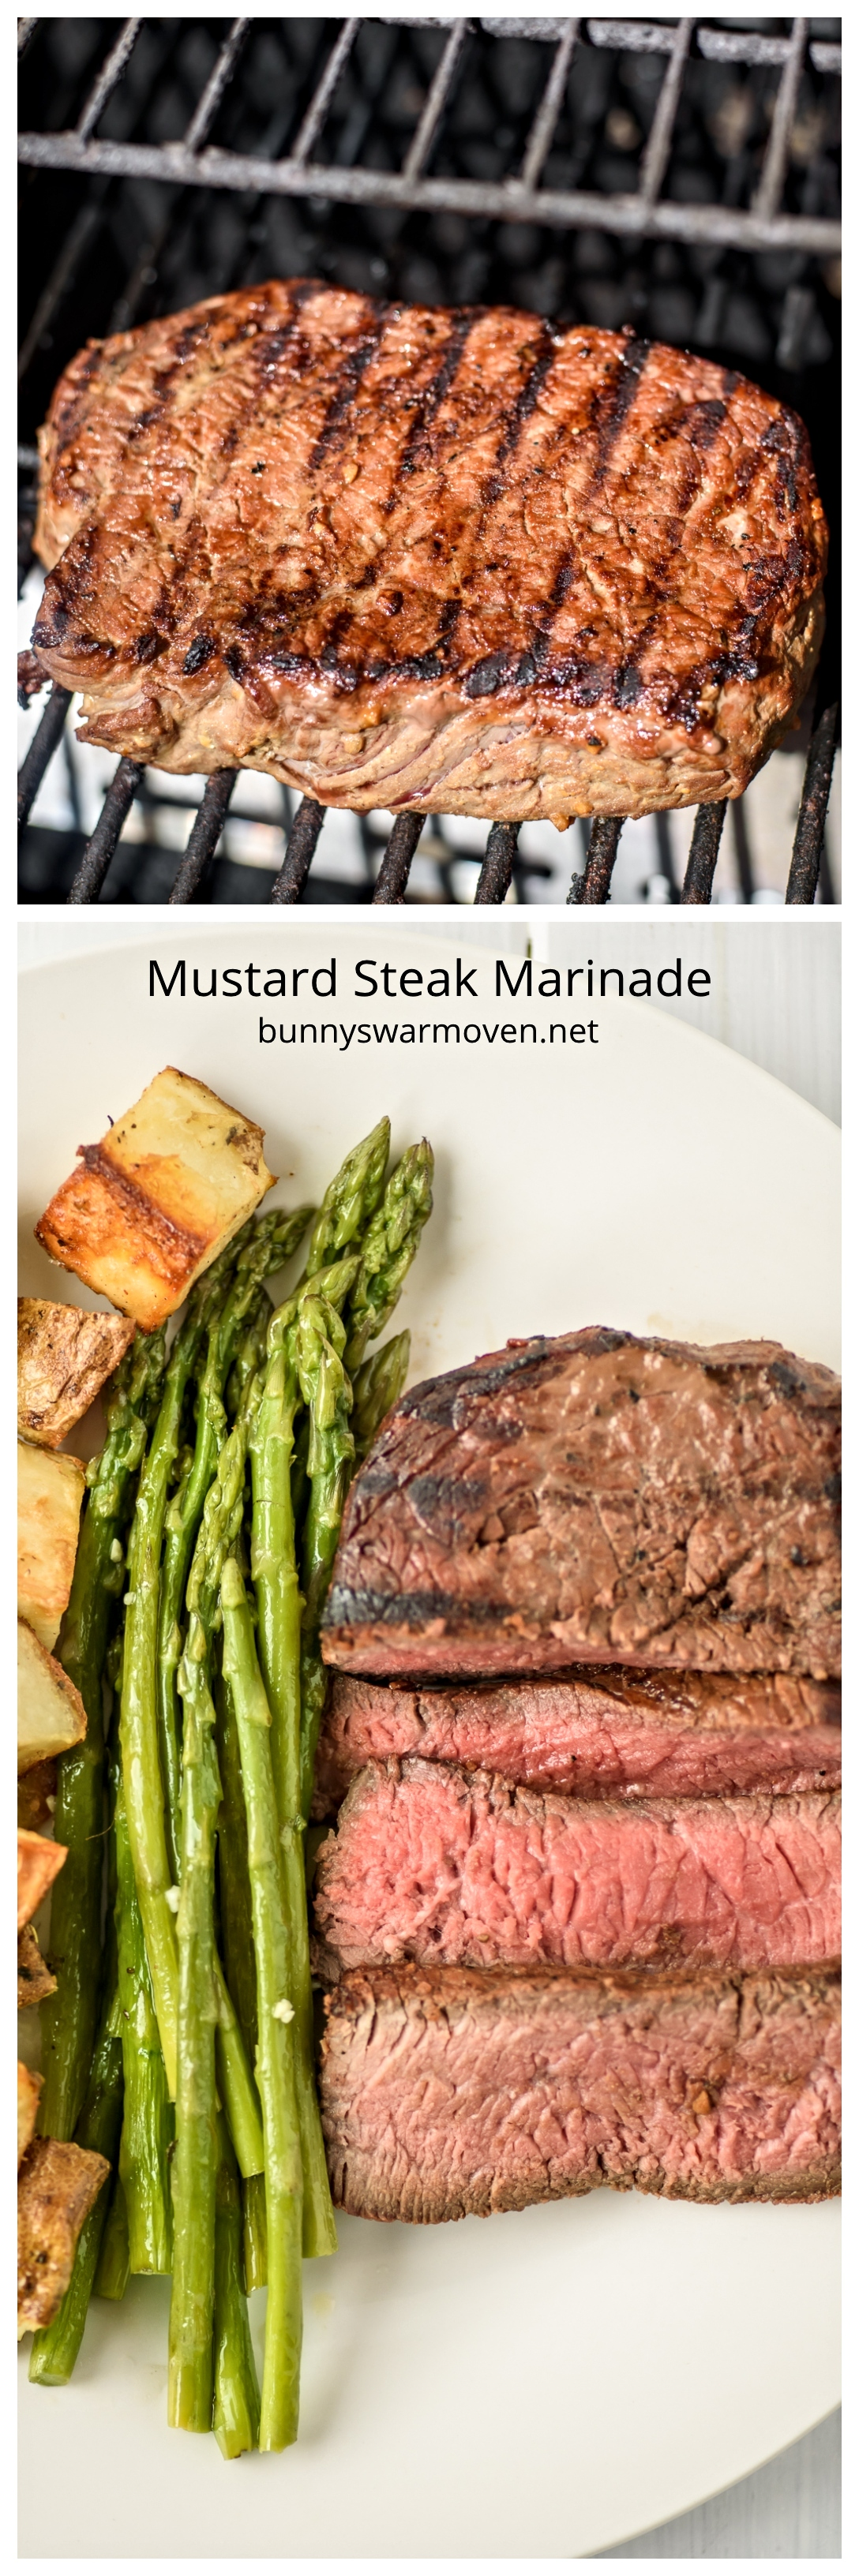 Mustard Steak Marinade